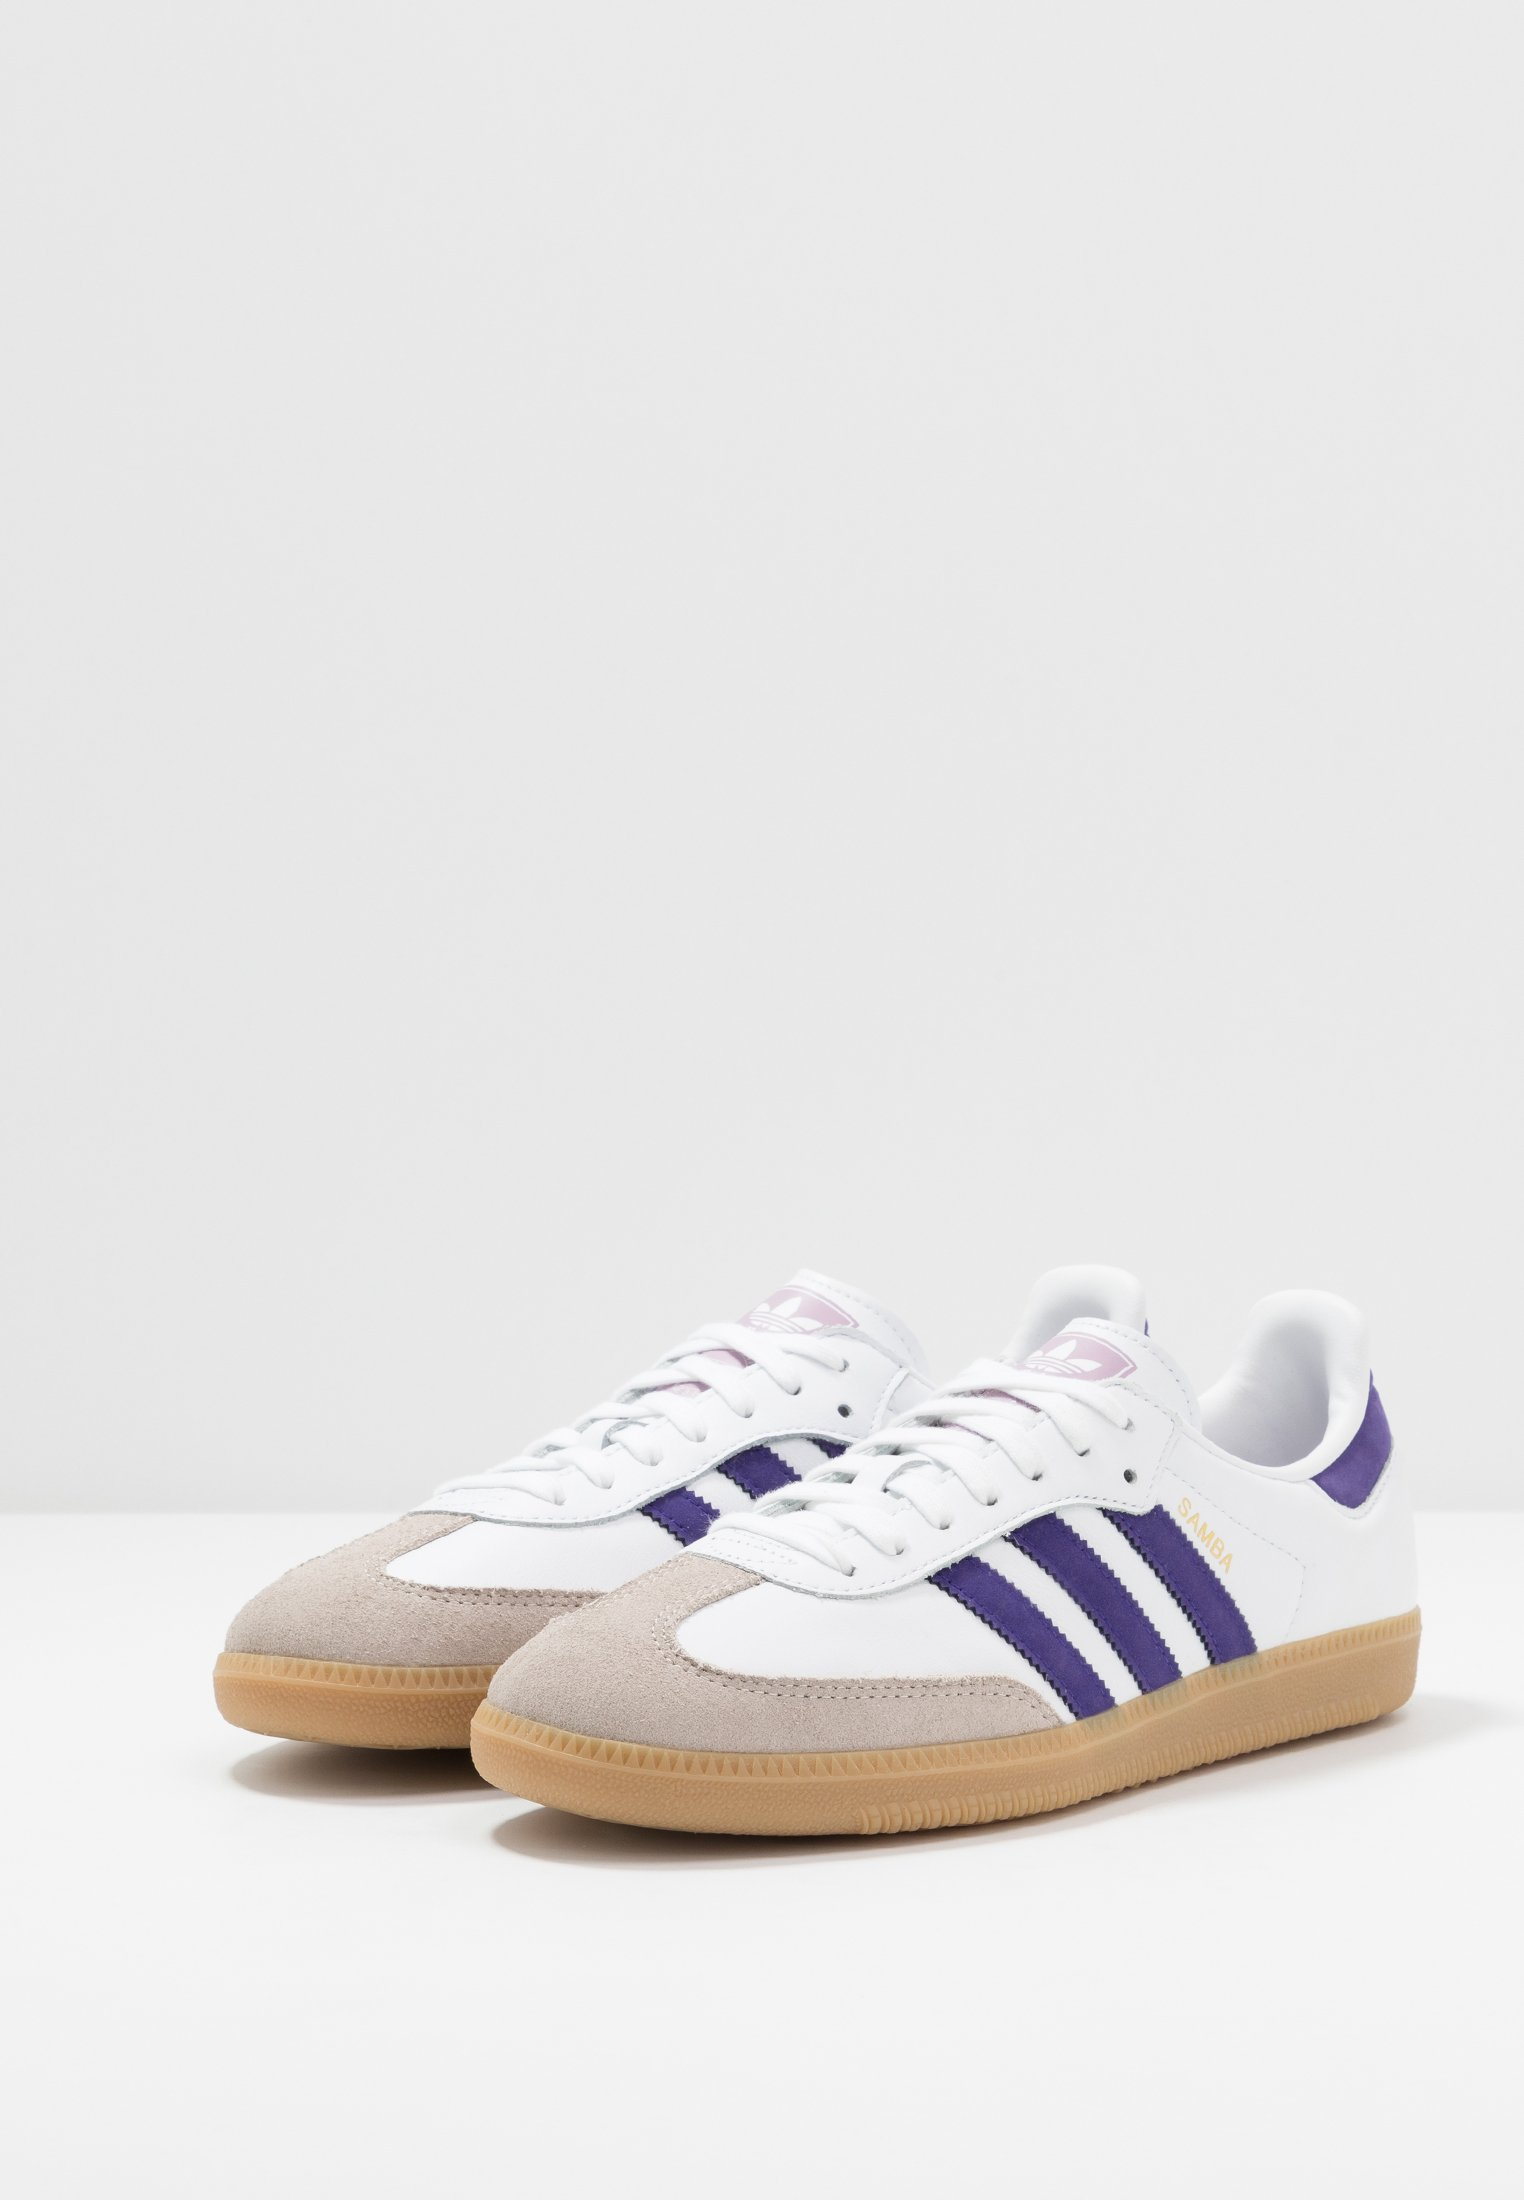 STYLE footwear purple FOOTBALL collegiate basses white adidas SAMBA Originals soft vision SHOESBaskets 2IYDWEH9